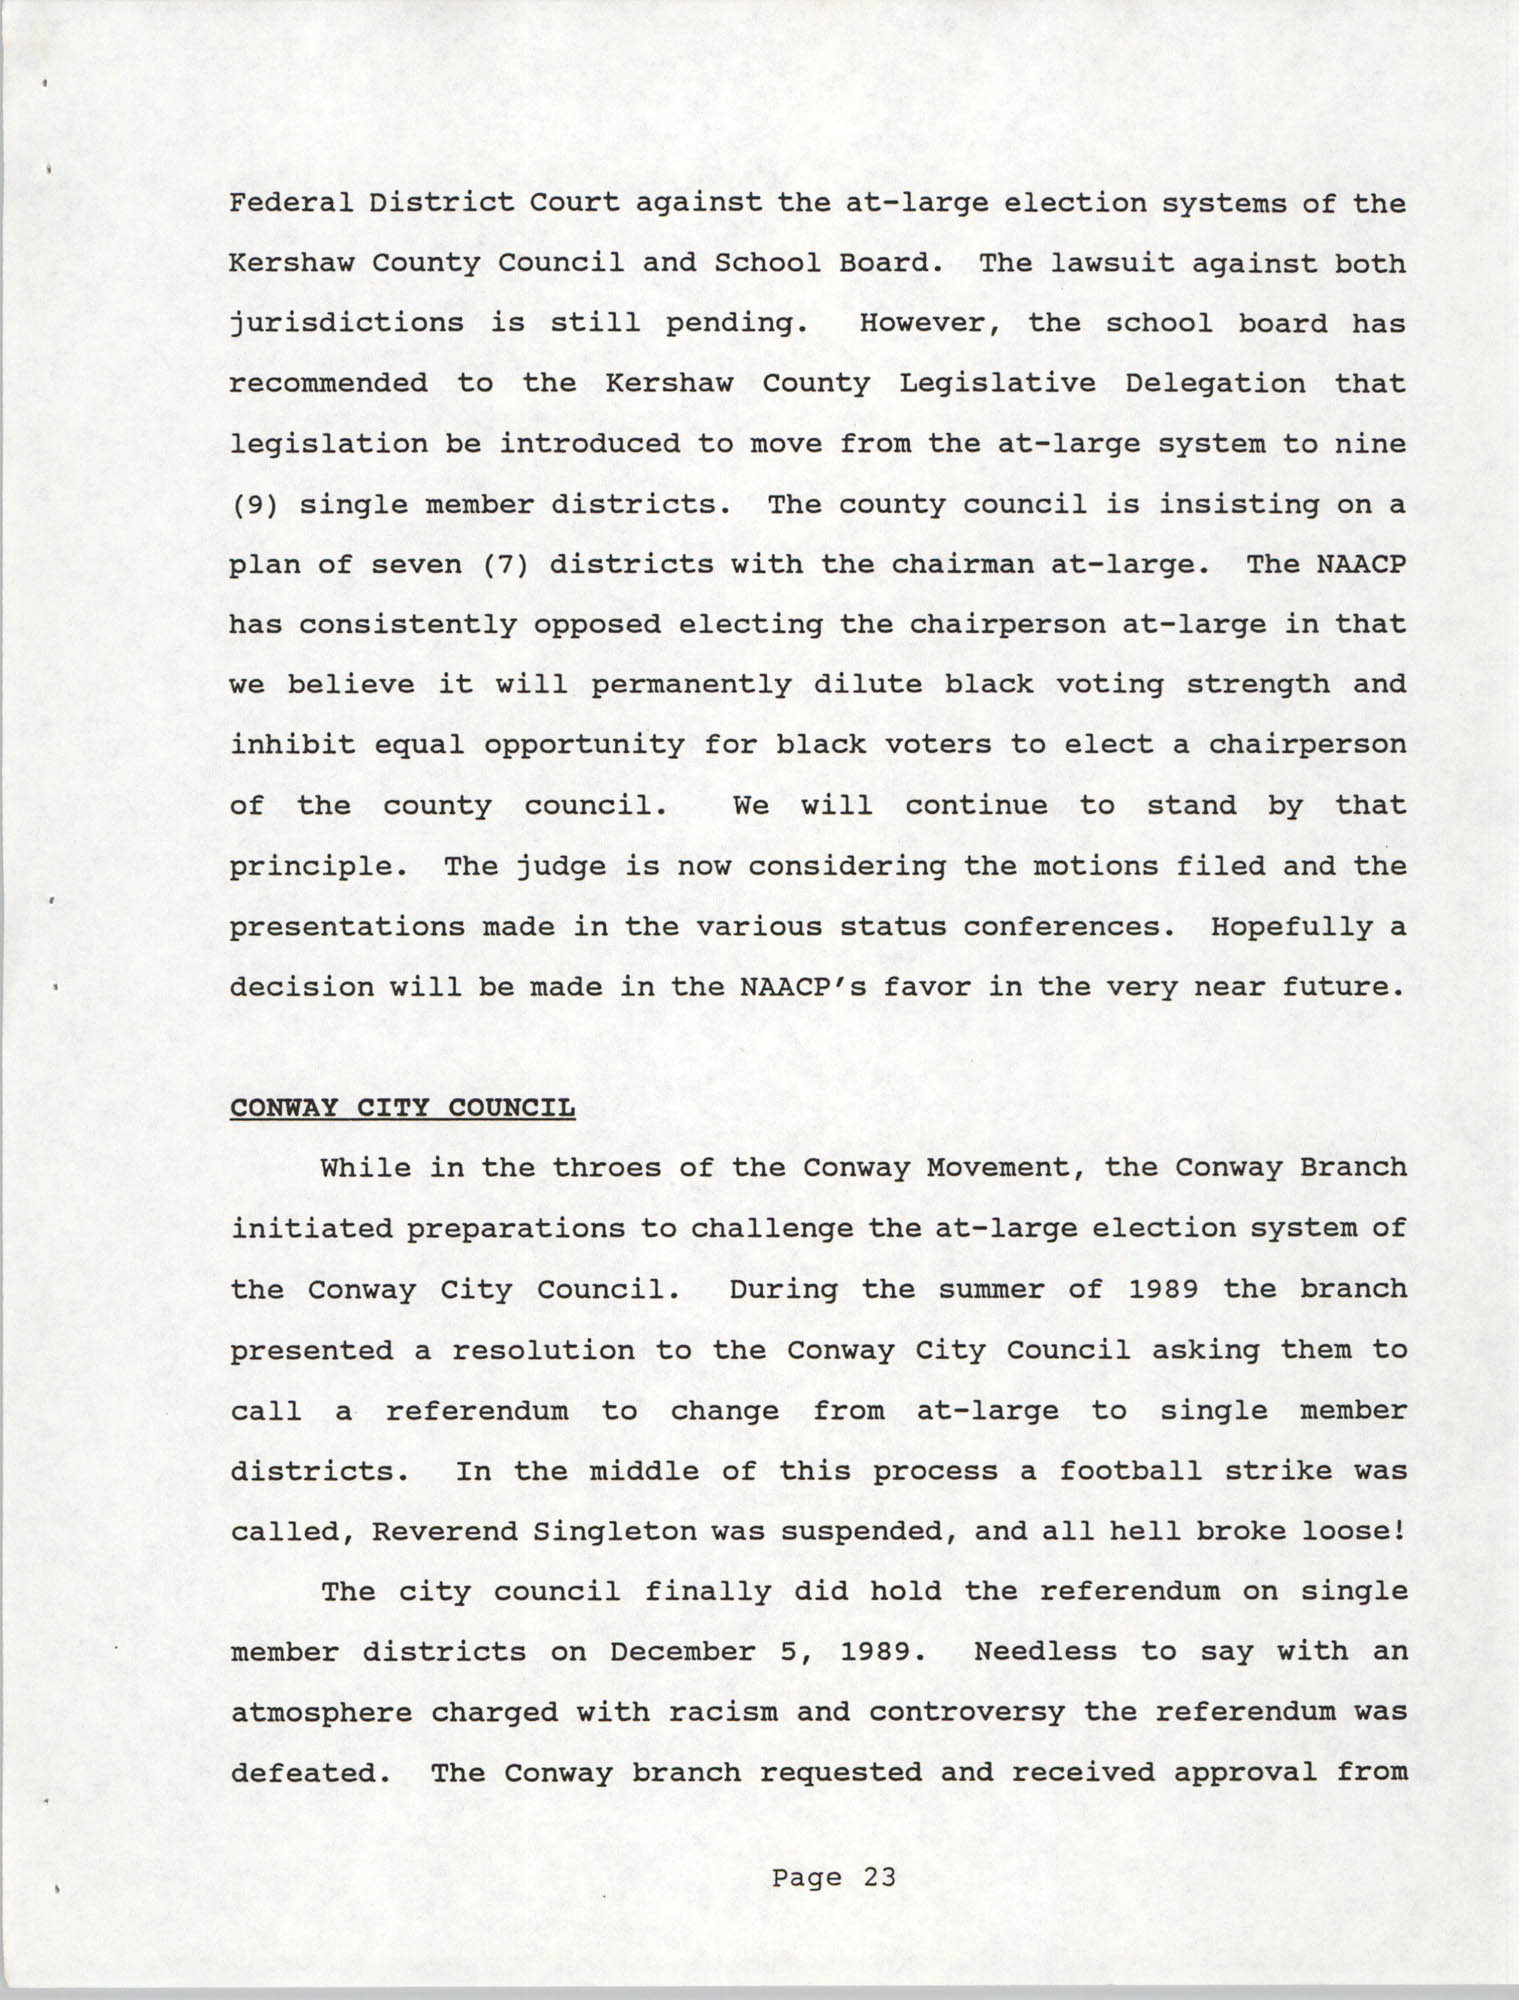 South Carolina Conference of Branches of the NAACP, 1990 Annual Report, Part One, Page 23